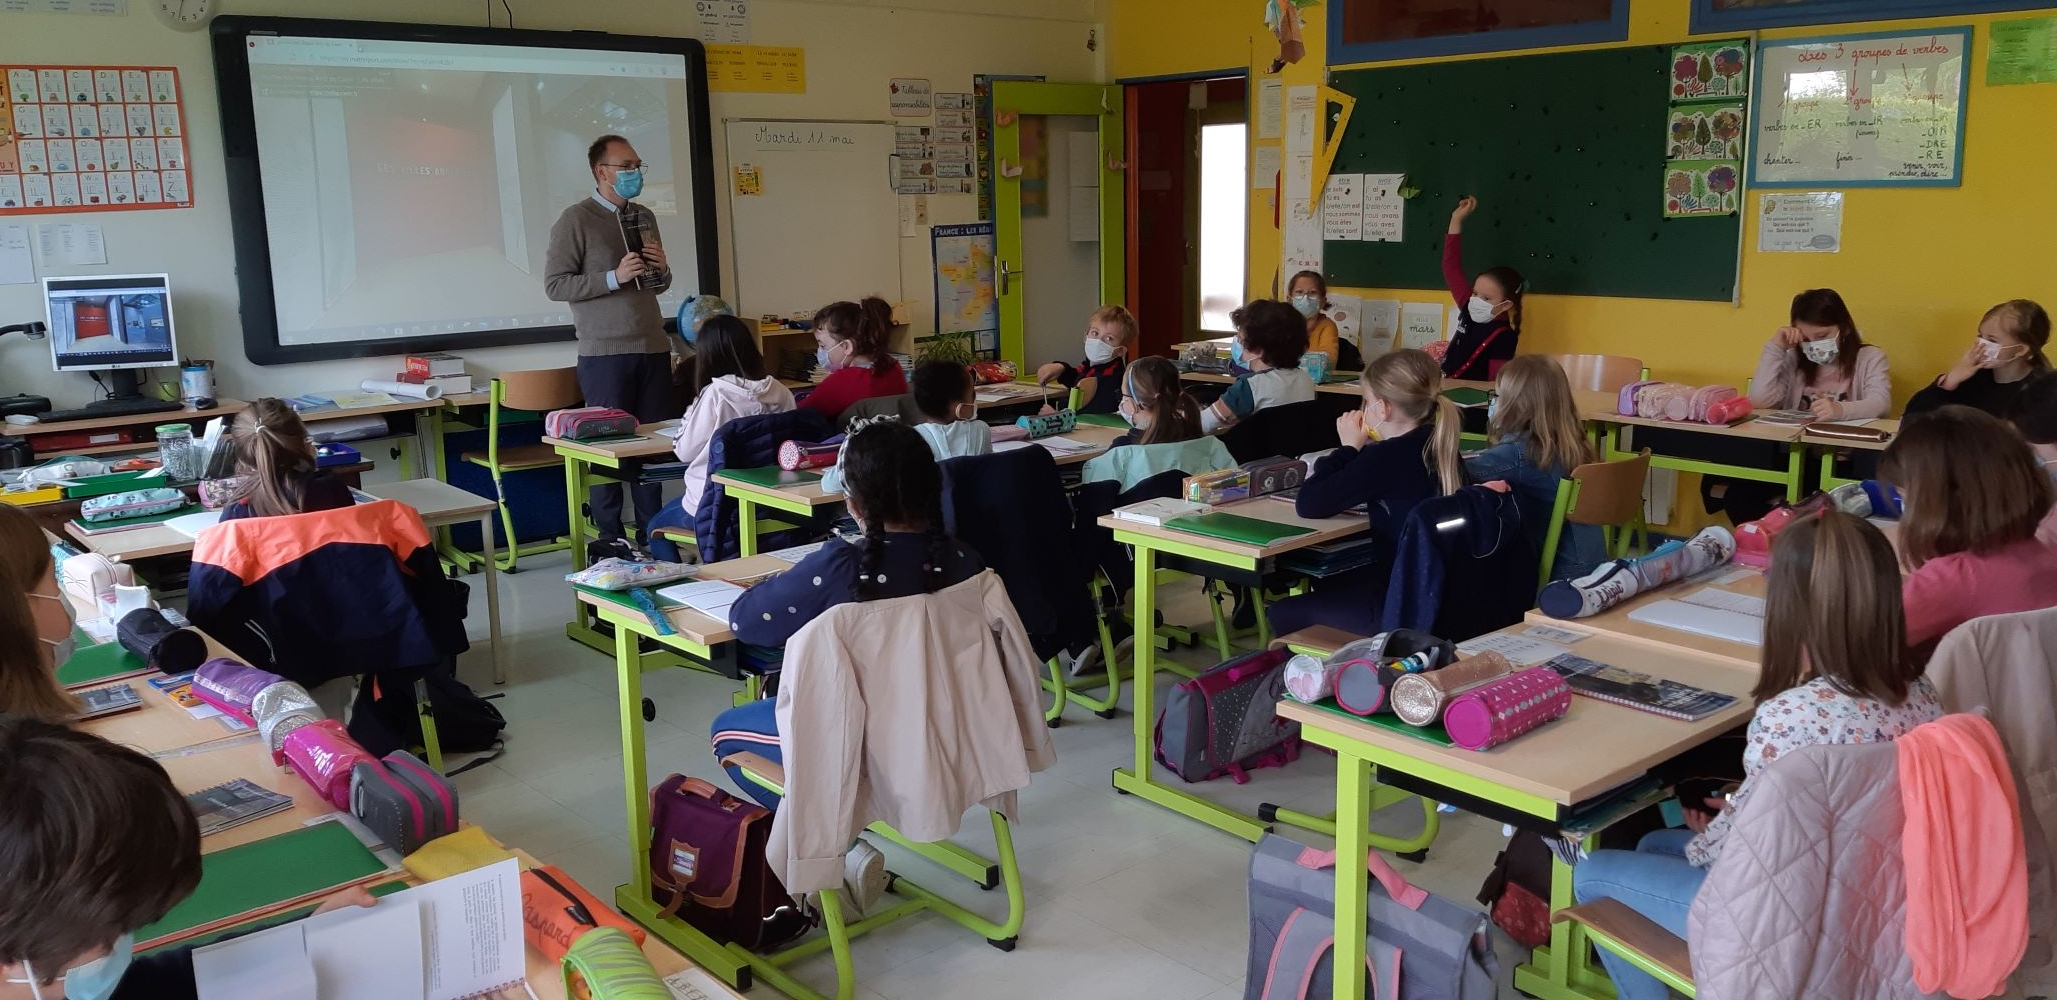 visite-musee-ce2-ecole-saint-francois-caen-rotated.jpg